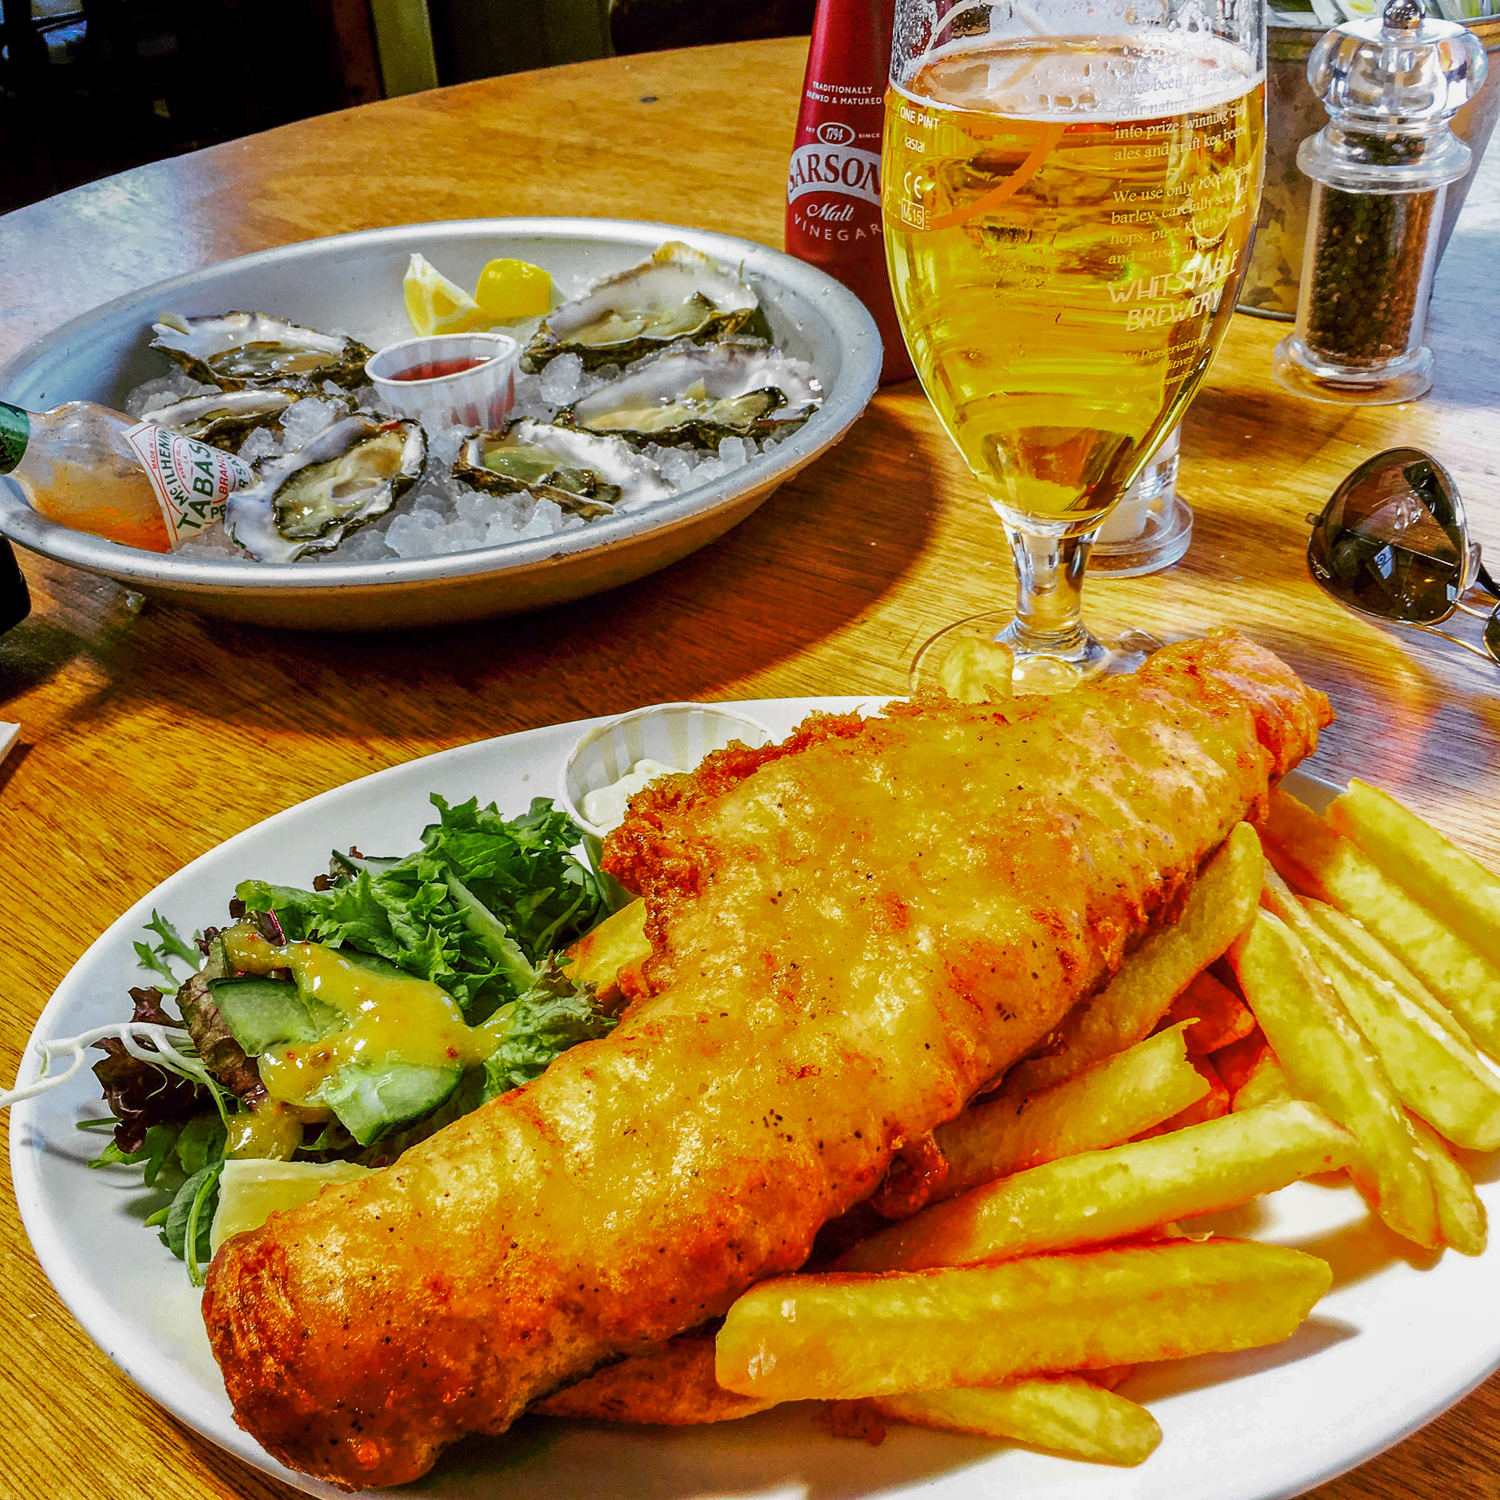 Whitstable fish fillet, Whitstable oysters and Whitstable Lager.